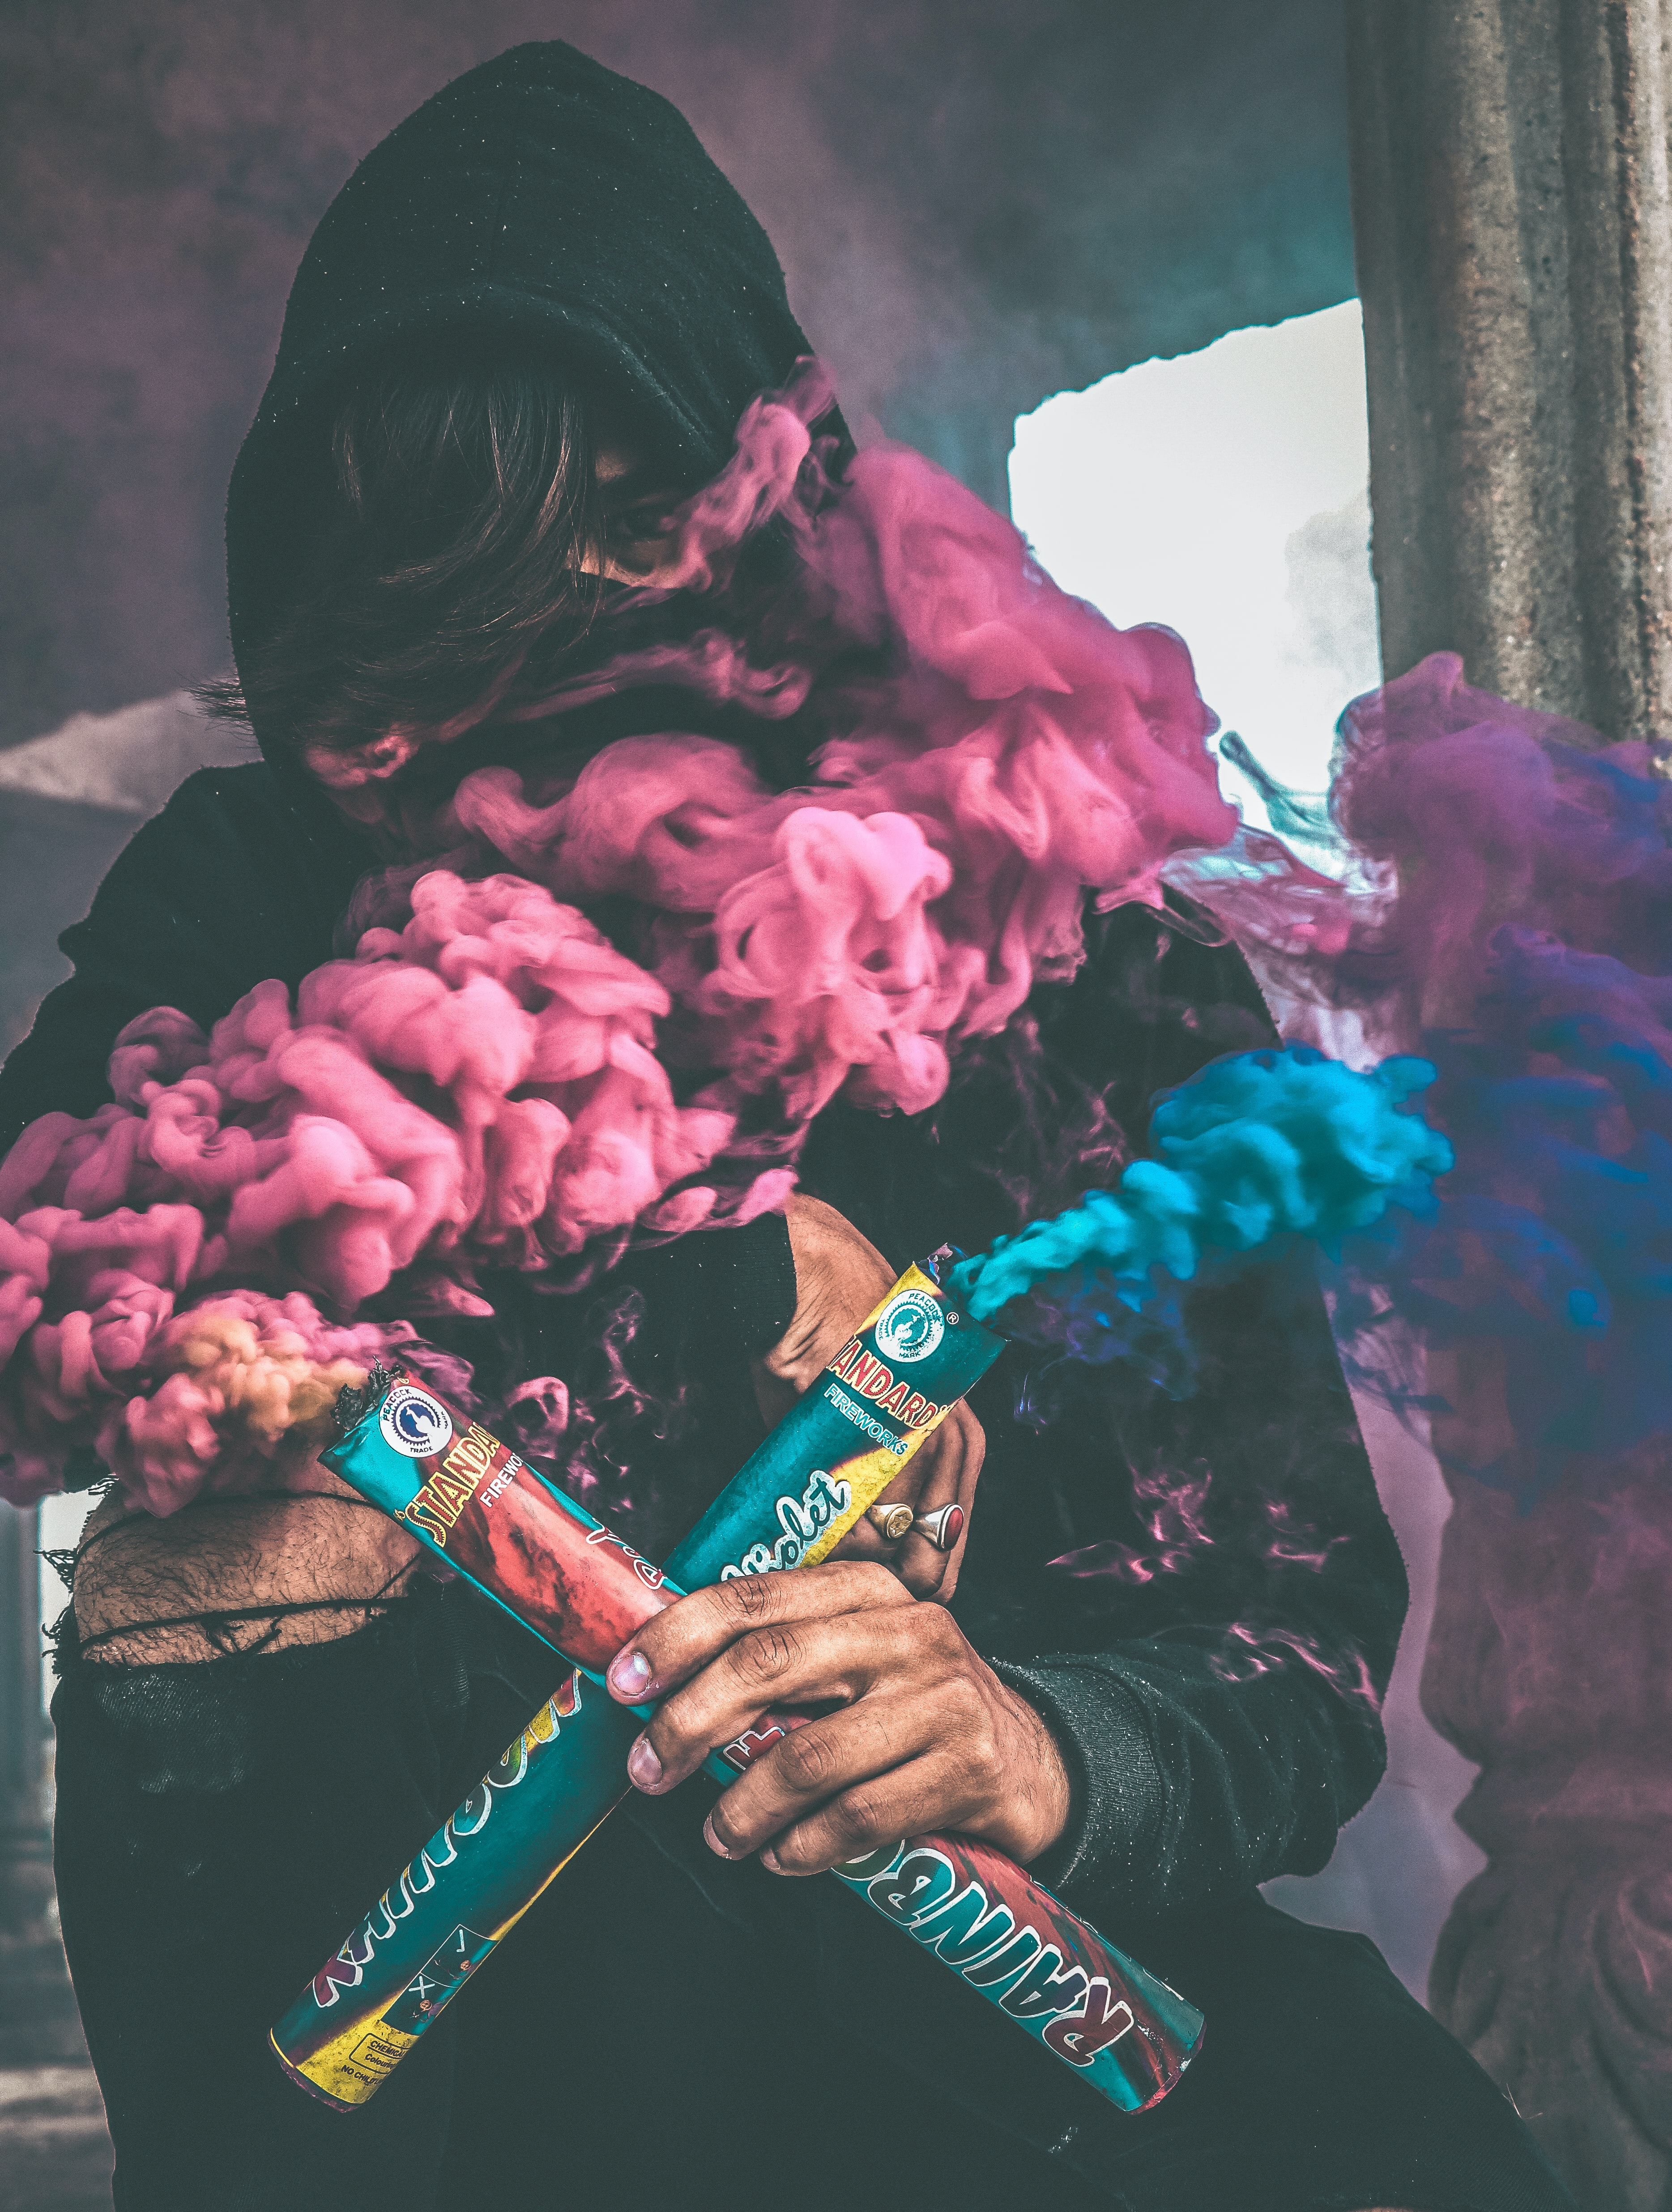 person holding colored smoke